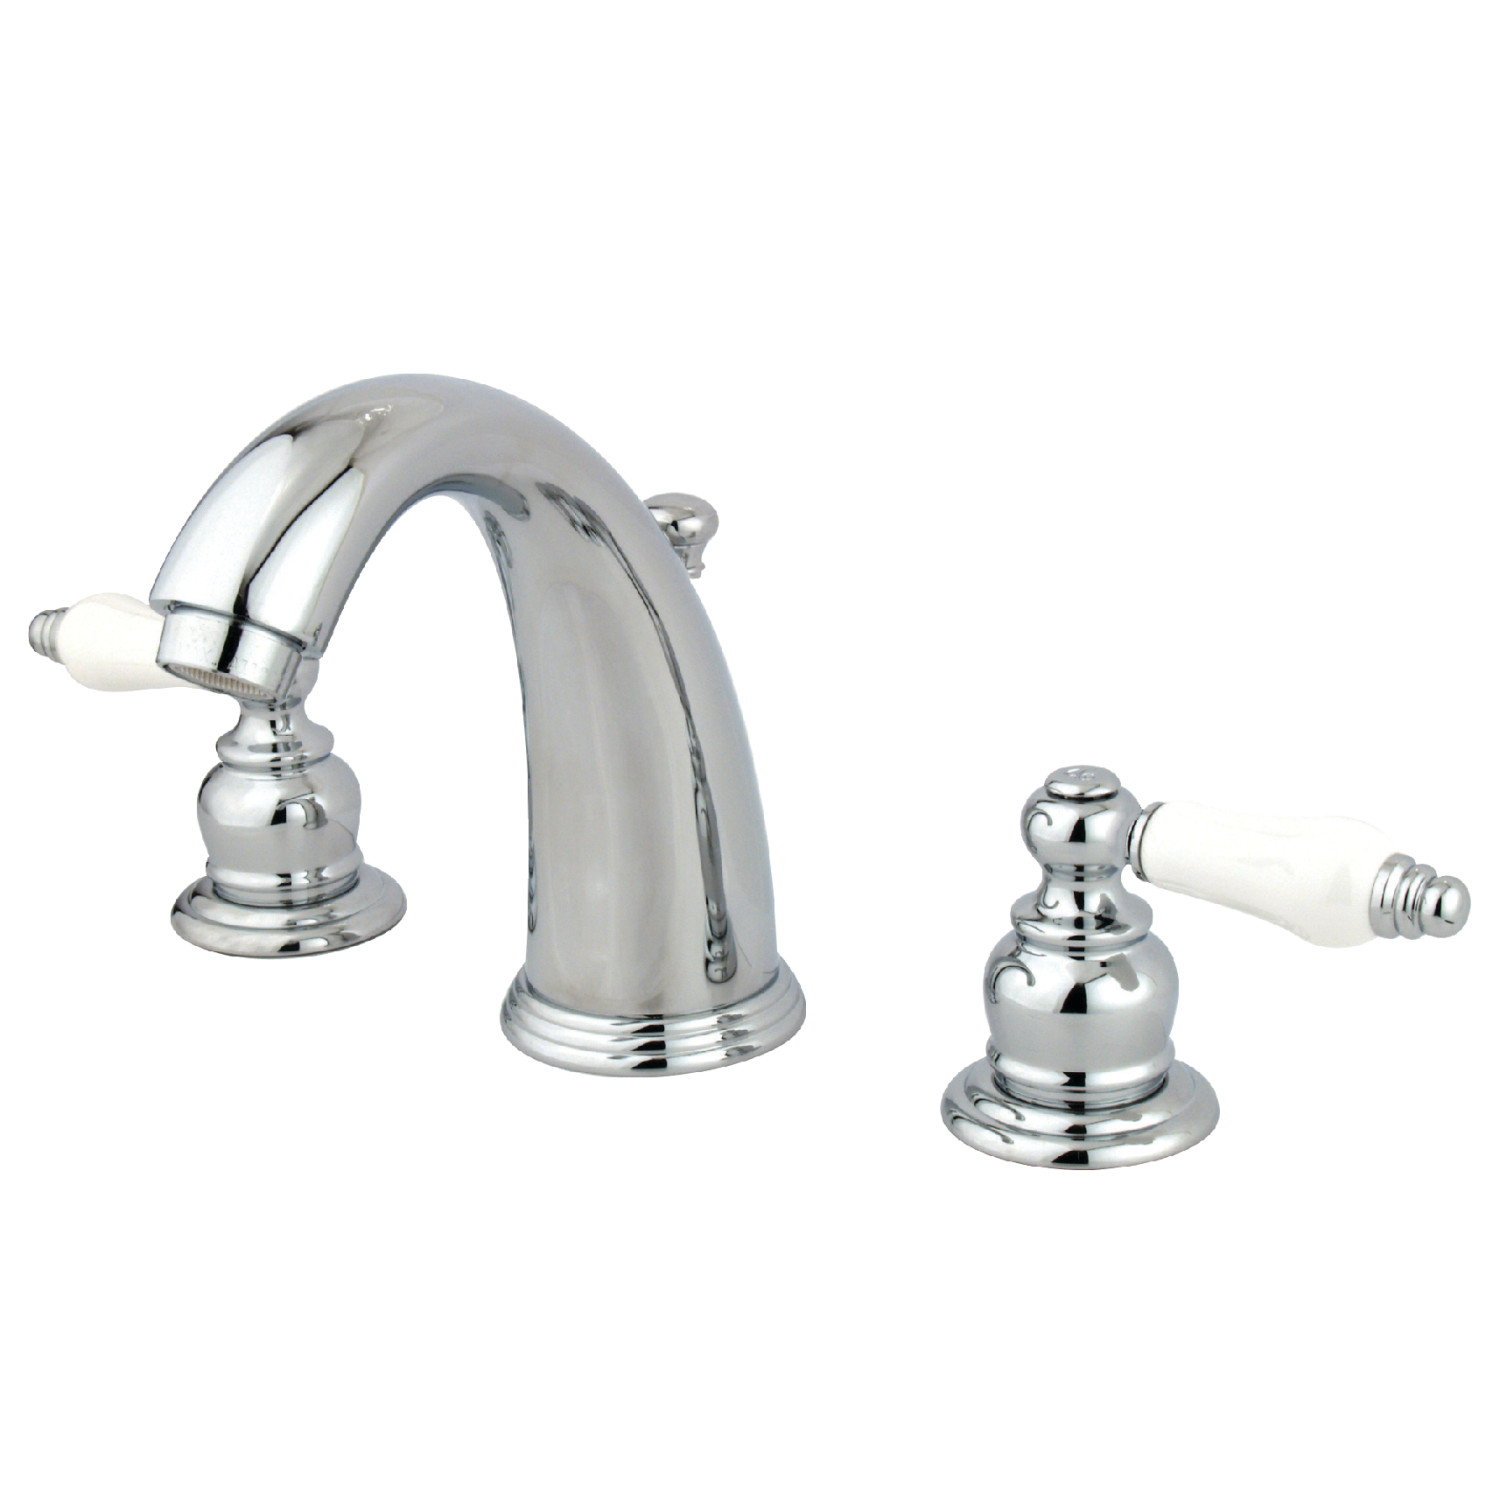 Vintage Dual Lever Two-Handle Three-Hole Deck Mounted Widespread Bathroom Faucet with Plastic Pop-Up in Polished Chrome